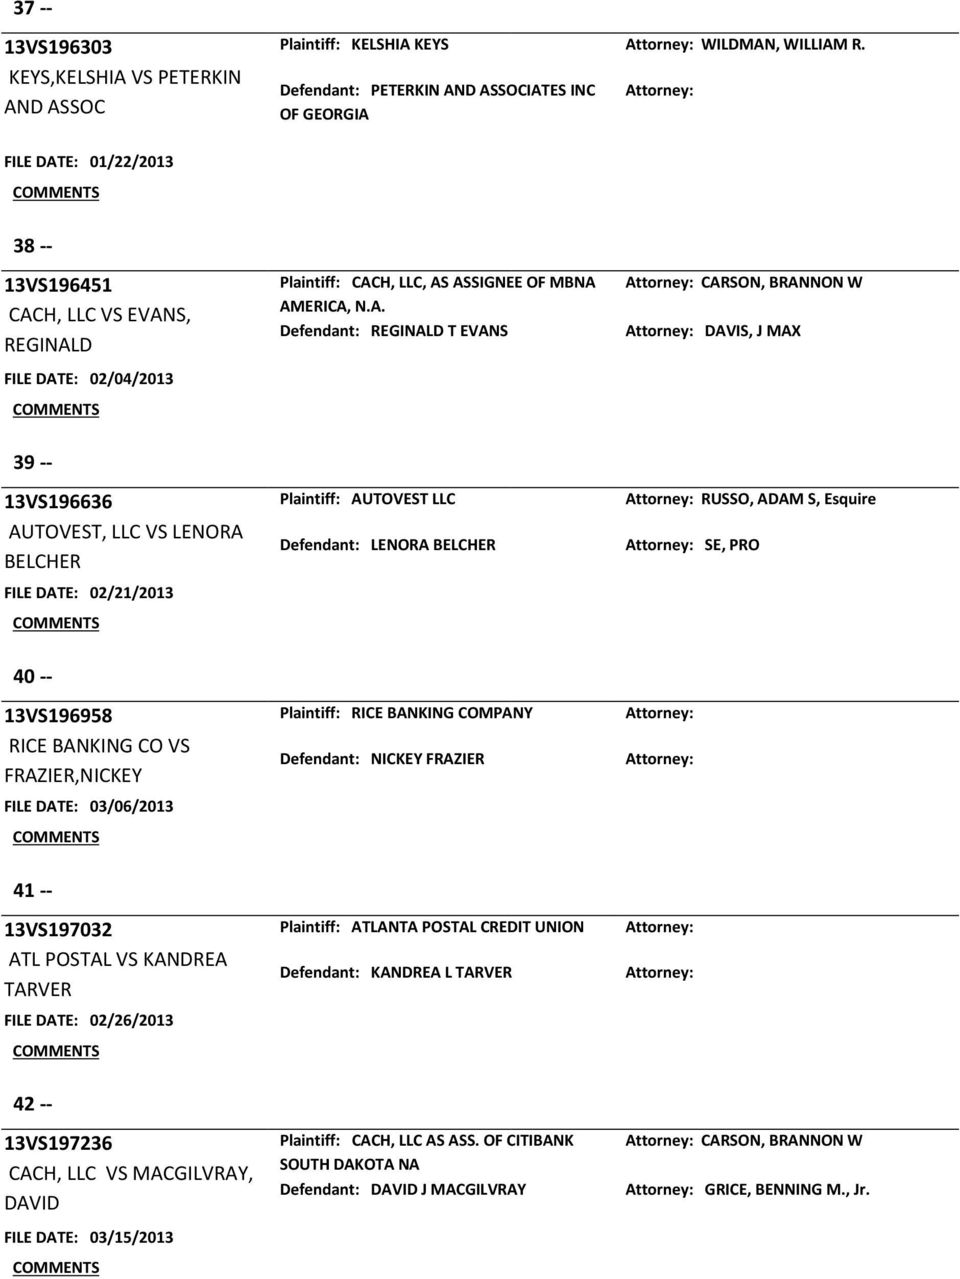 D ASSOCIATES INC OF GEORGIA FILE DATE: 01/22/2013 38 -- 13VS196451 CACH, LLC VS EVANS, REGINALD FILE DATE: 02/04/2013 Plaintiff: CACH, LLC, AS ASSIGNEE OF MBNA AMERICA, N.A. Defendant: REGINALD T